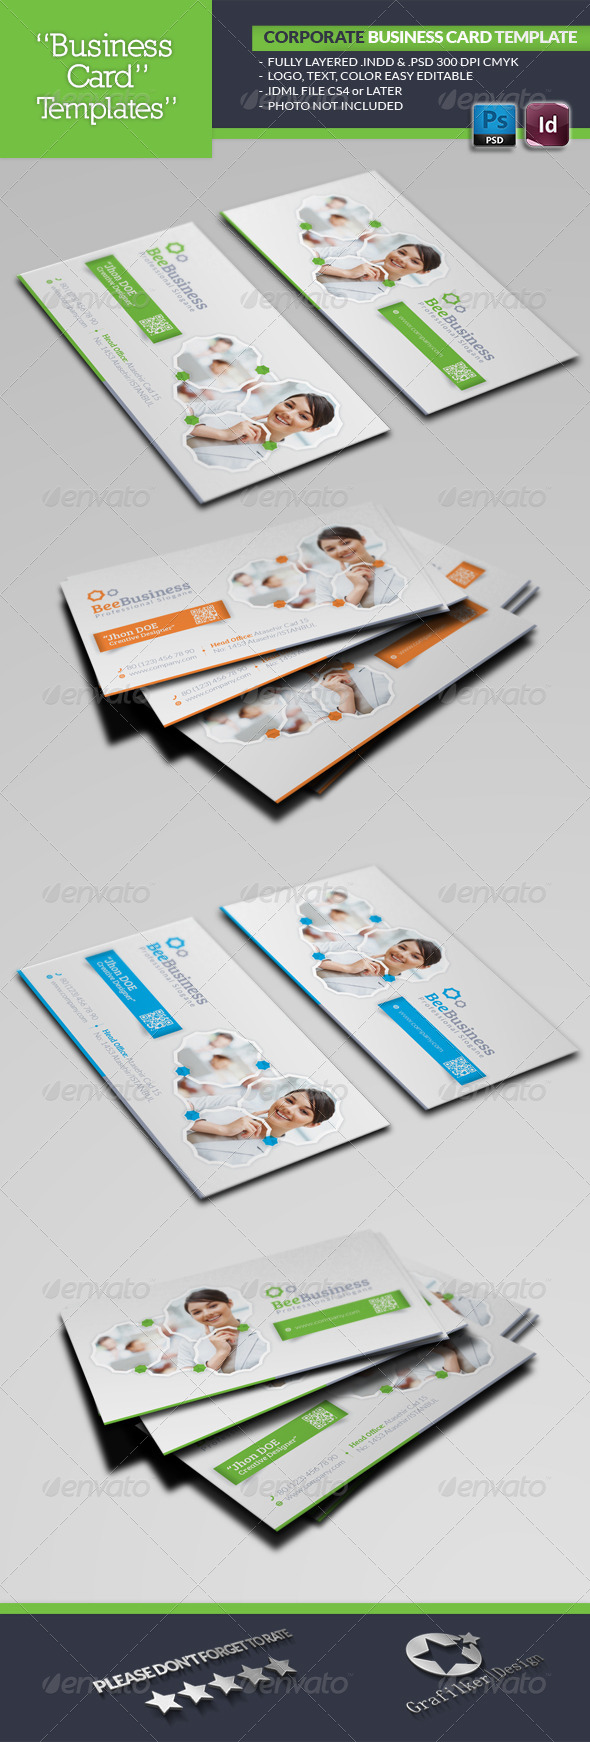 GraphicRiver Corporate Business Card Template 5100531